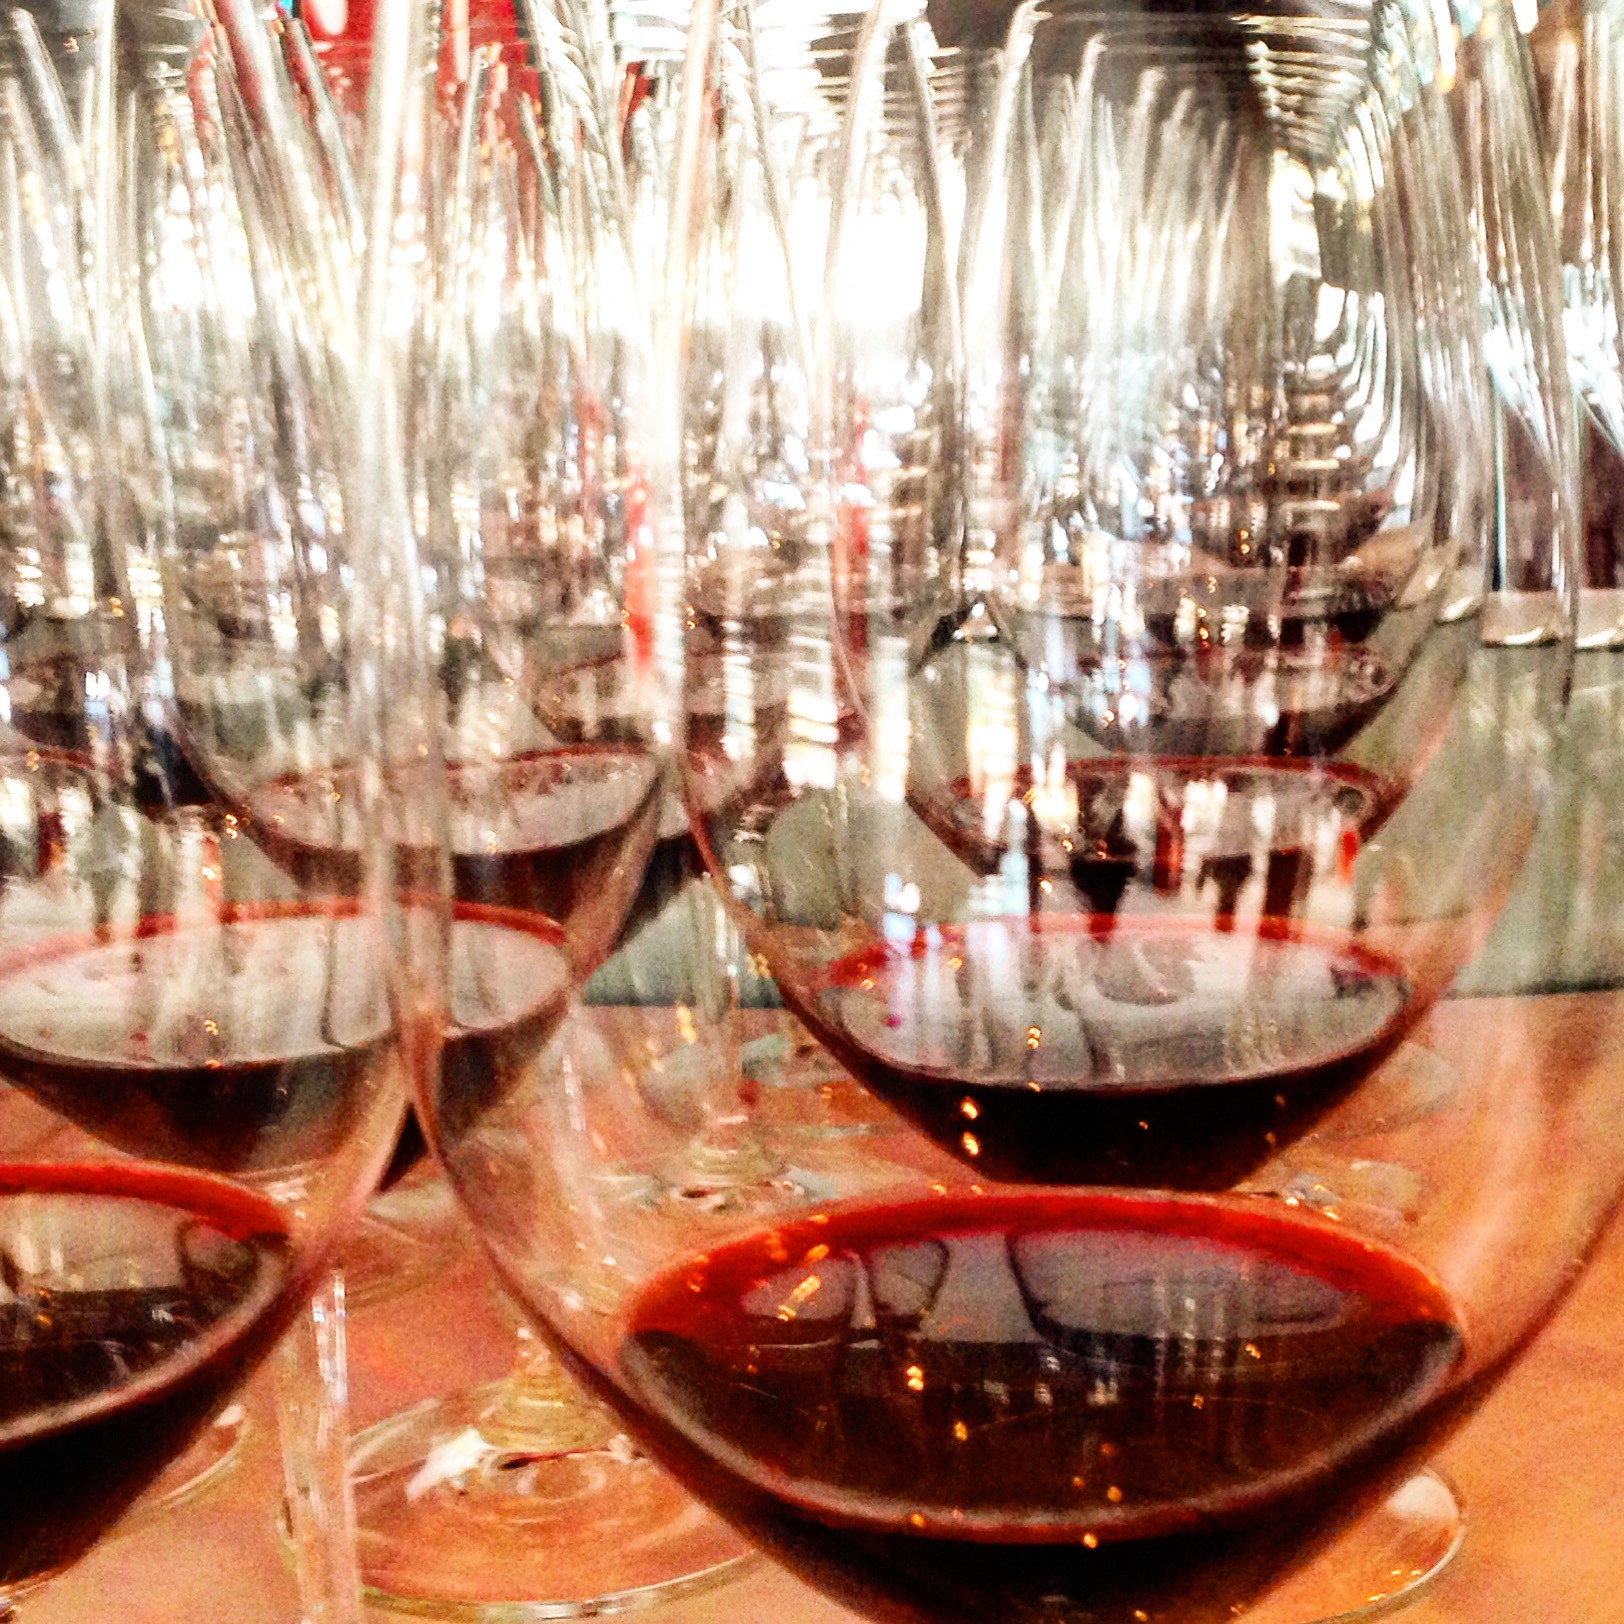 Conversations about … Why are we still shaming wine drinkers?